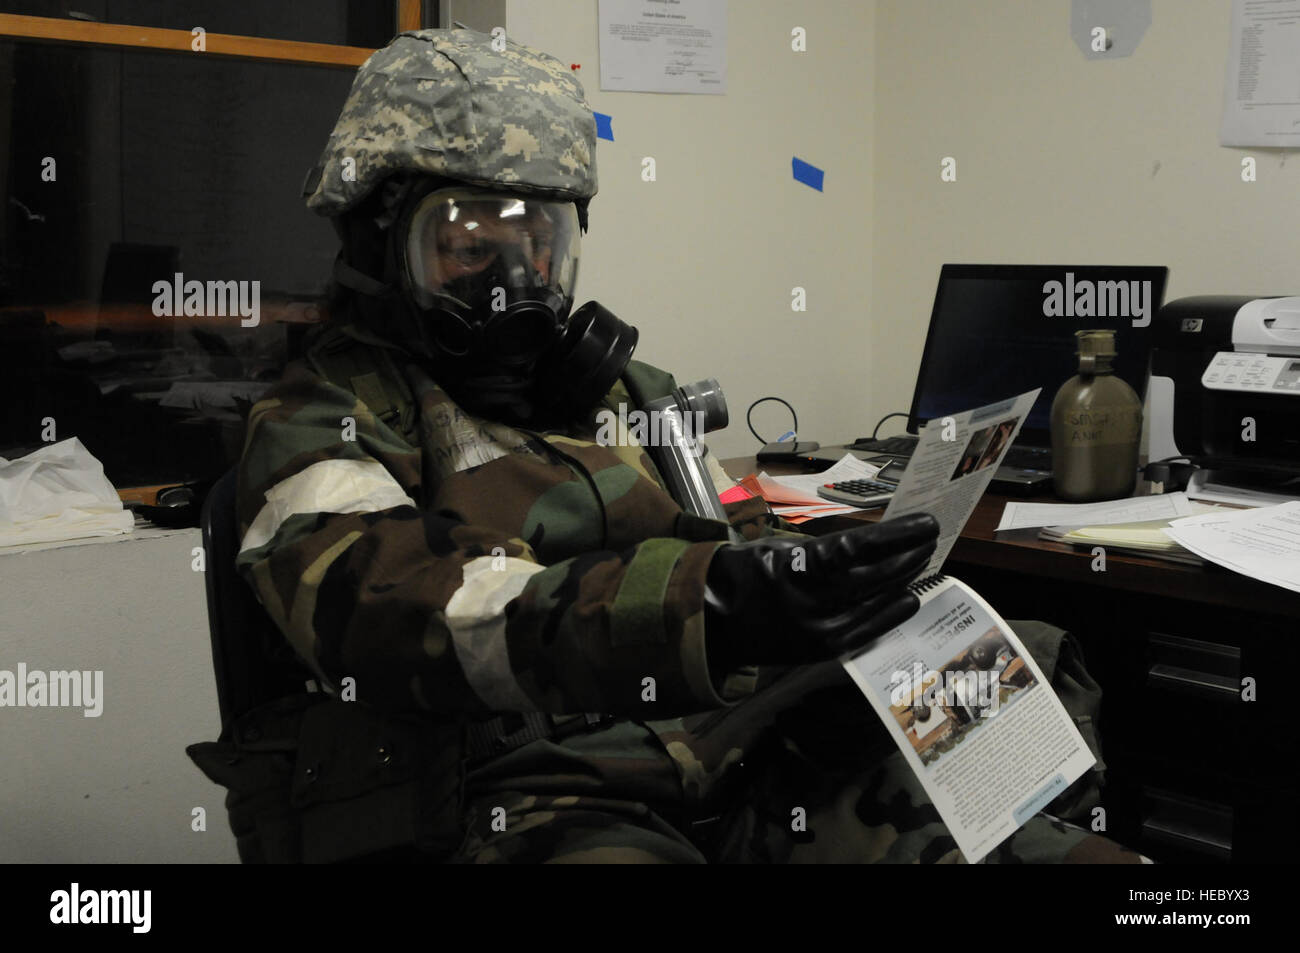 A U.S. Airman clad in a chemical protective overgarment checks over paperwork while waiting out a post attack assessment - Stock Image